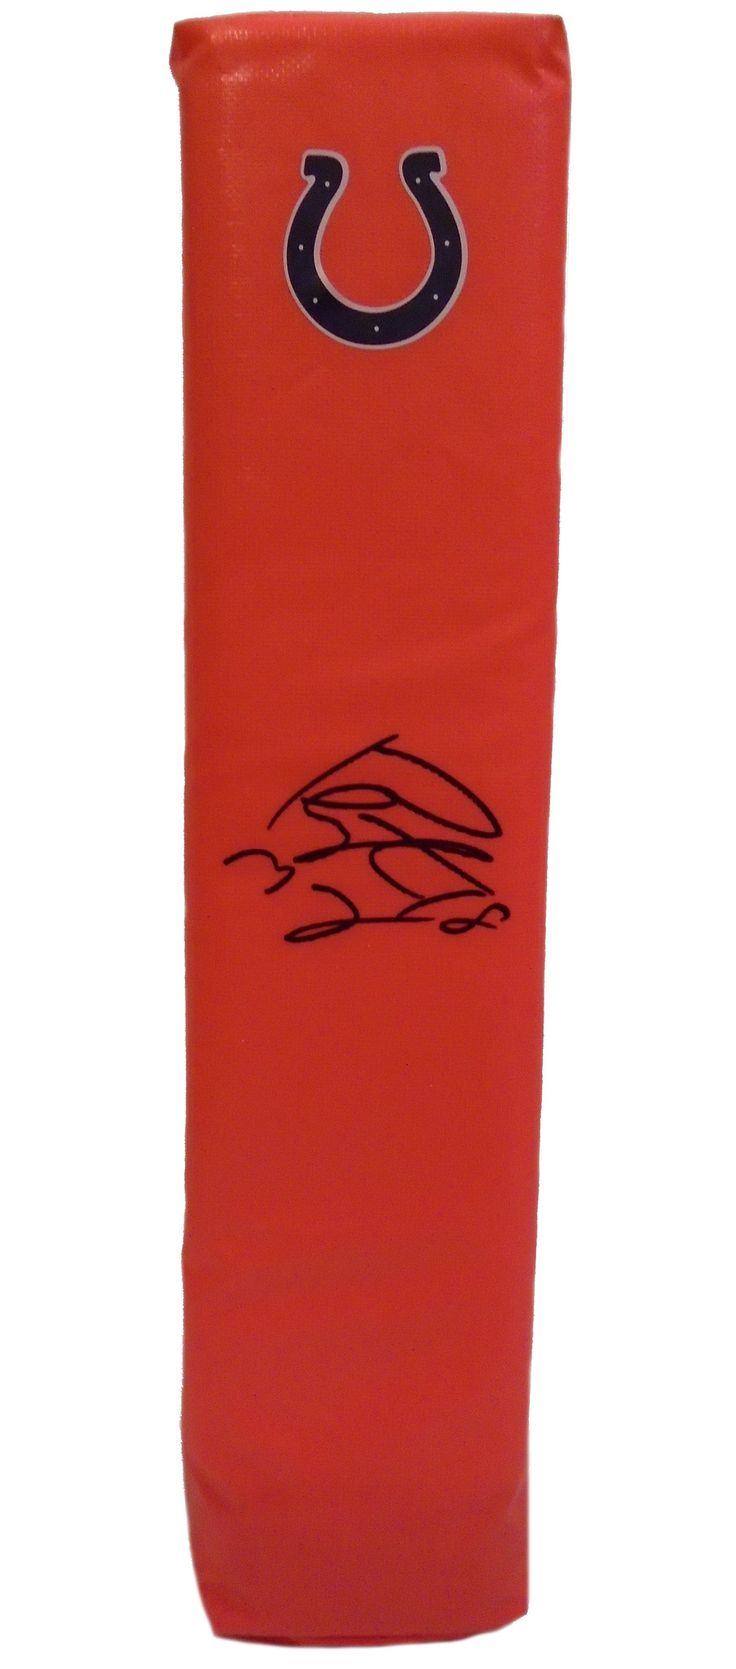 Peyton Manning signed Indianapolis Colts full size football touchdown end zone pylon w/ PSA/DNA authentication. Free USPS shipping. www.AutographedwithProof.com is your one stop for autographed collectibles from Indiana sports teams. Check back with us often, as we are always obtaining new items.